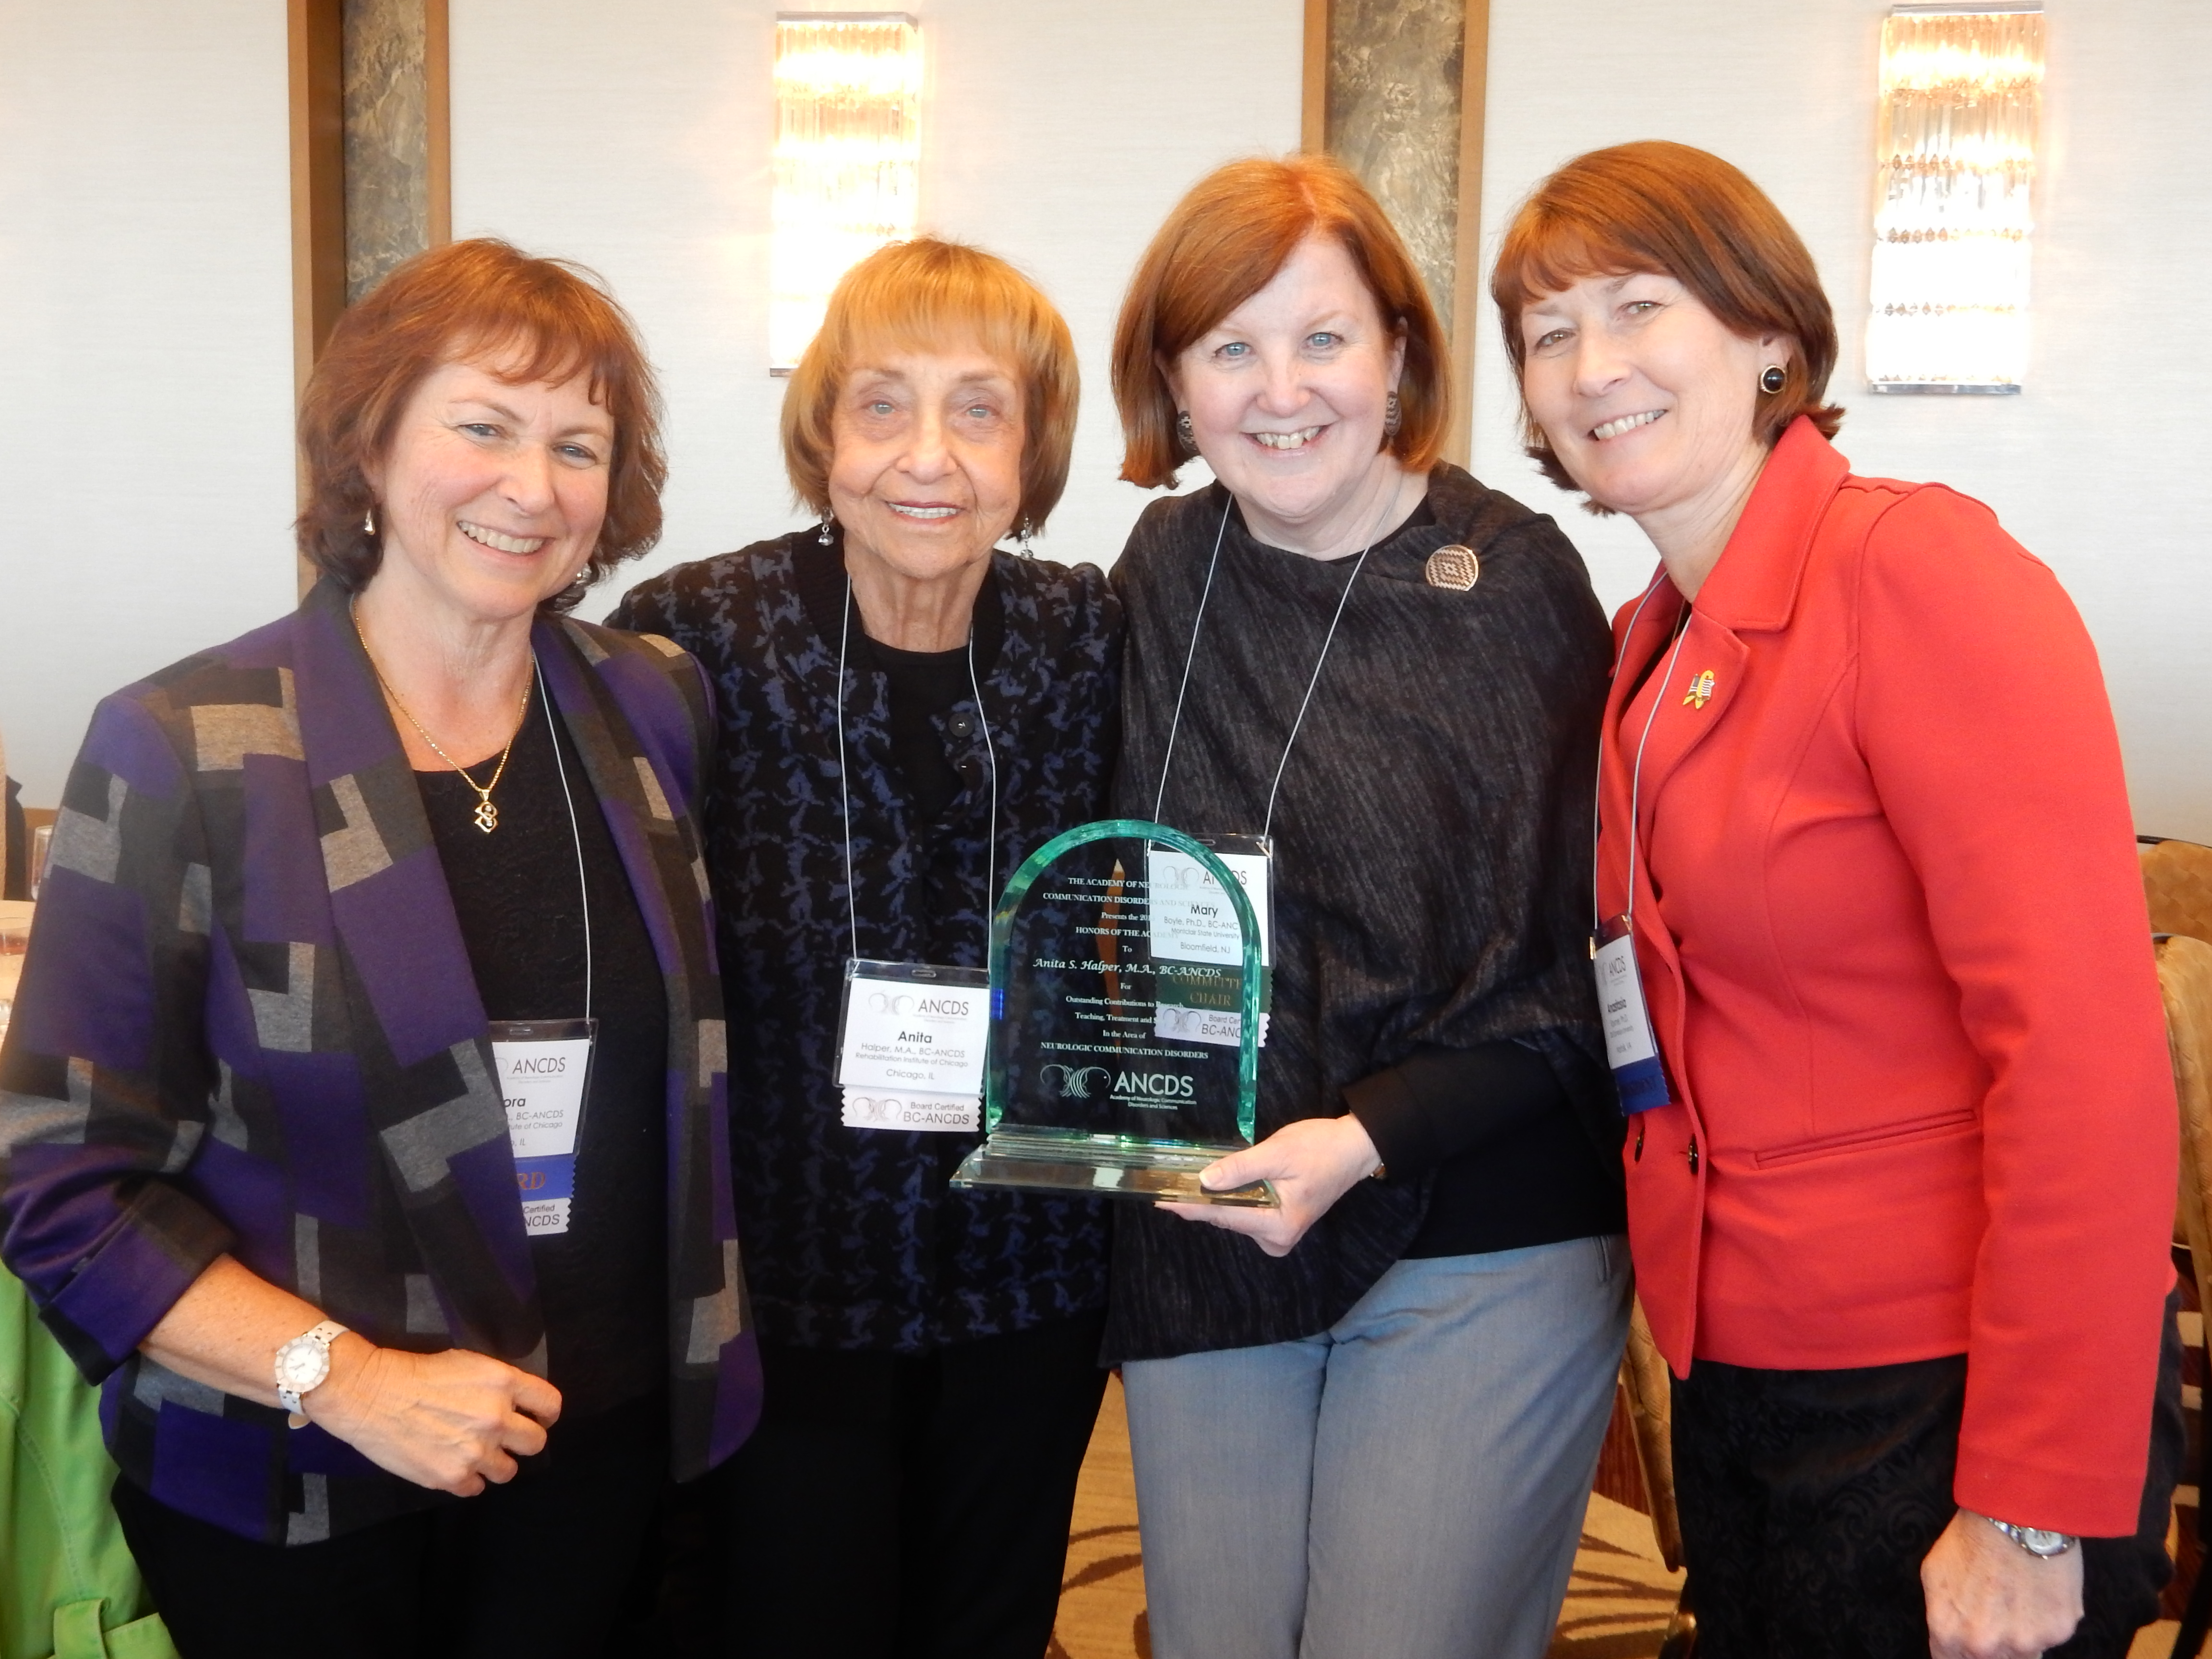 Anita Halper honoree (second from left), with her nominators, Leora Cherney (left) and Stacie Raymer (right), and Mary Boyle, Chair of the ANCDS Committee on Honors.